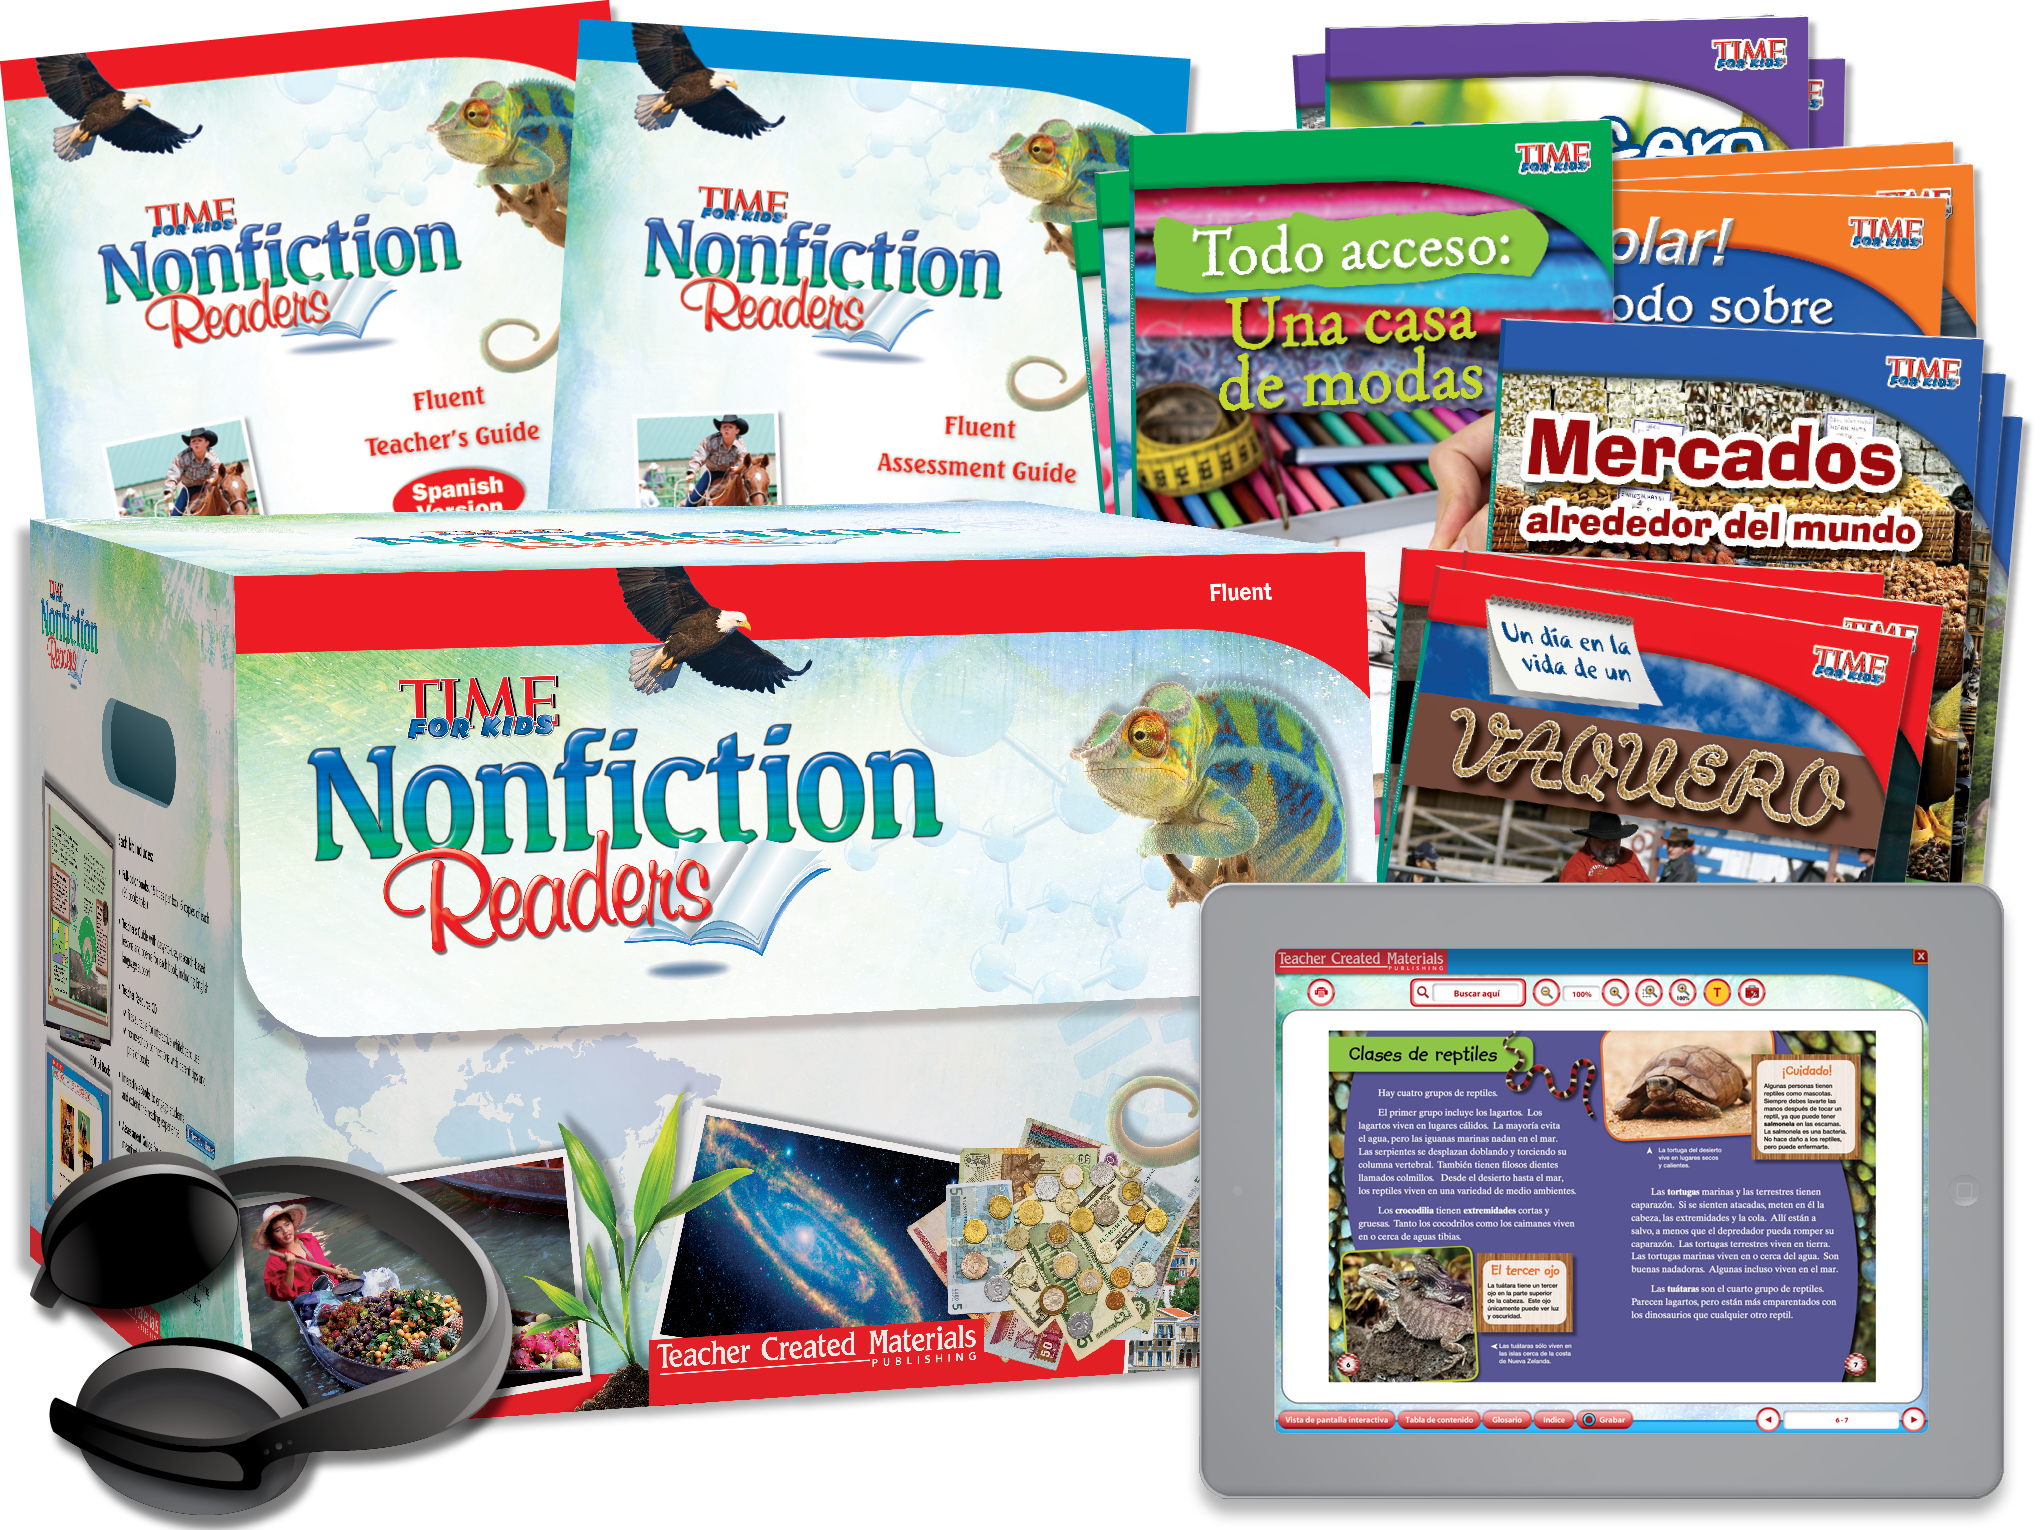 TIME FOR KIDS® Nonfiction Readers: Fluent Kit (Spanish Version)